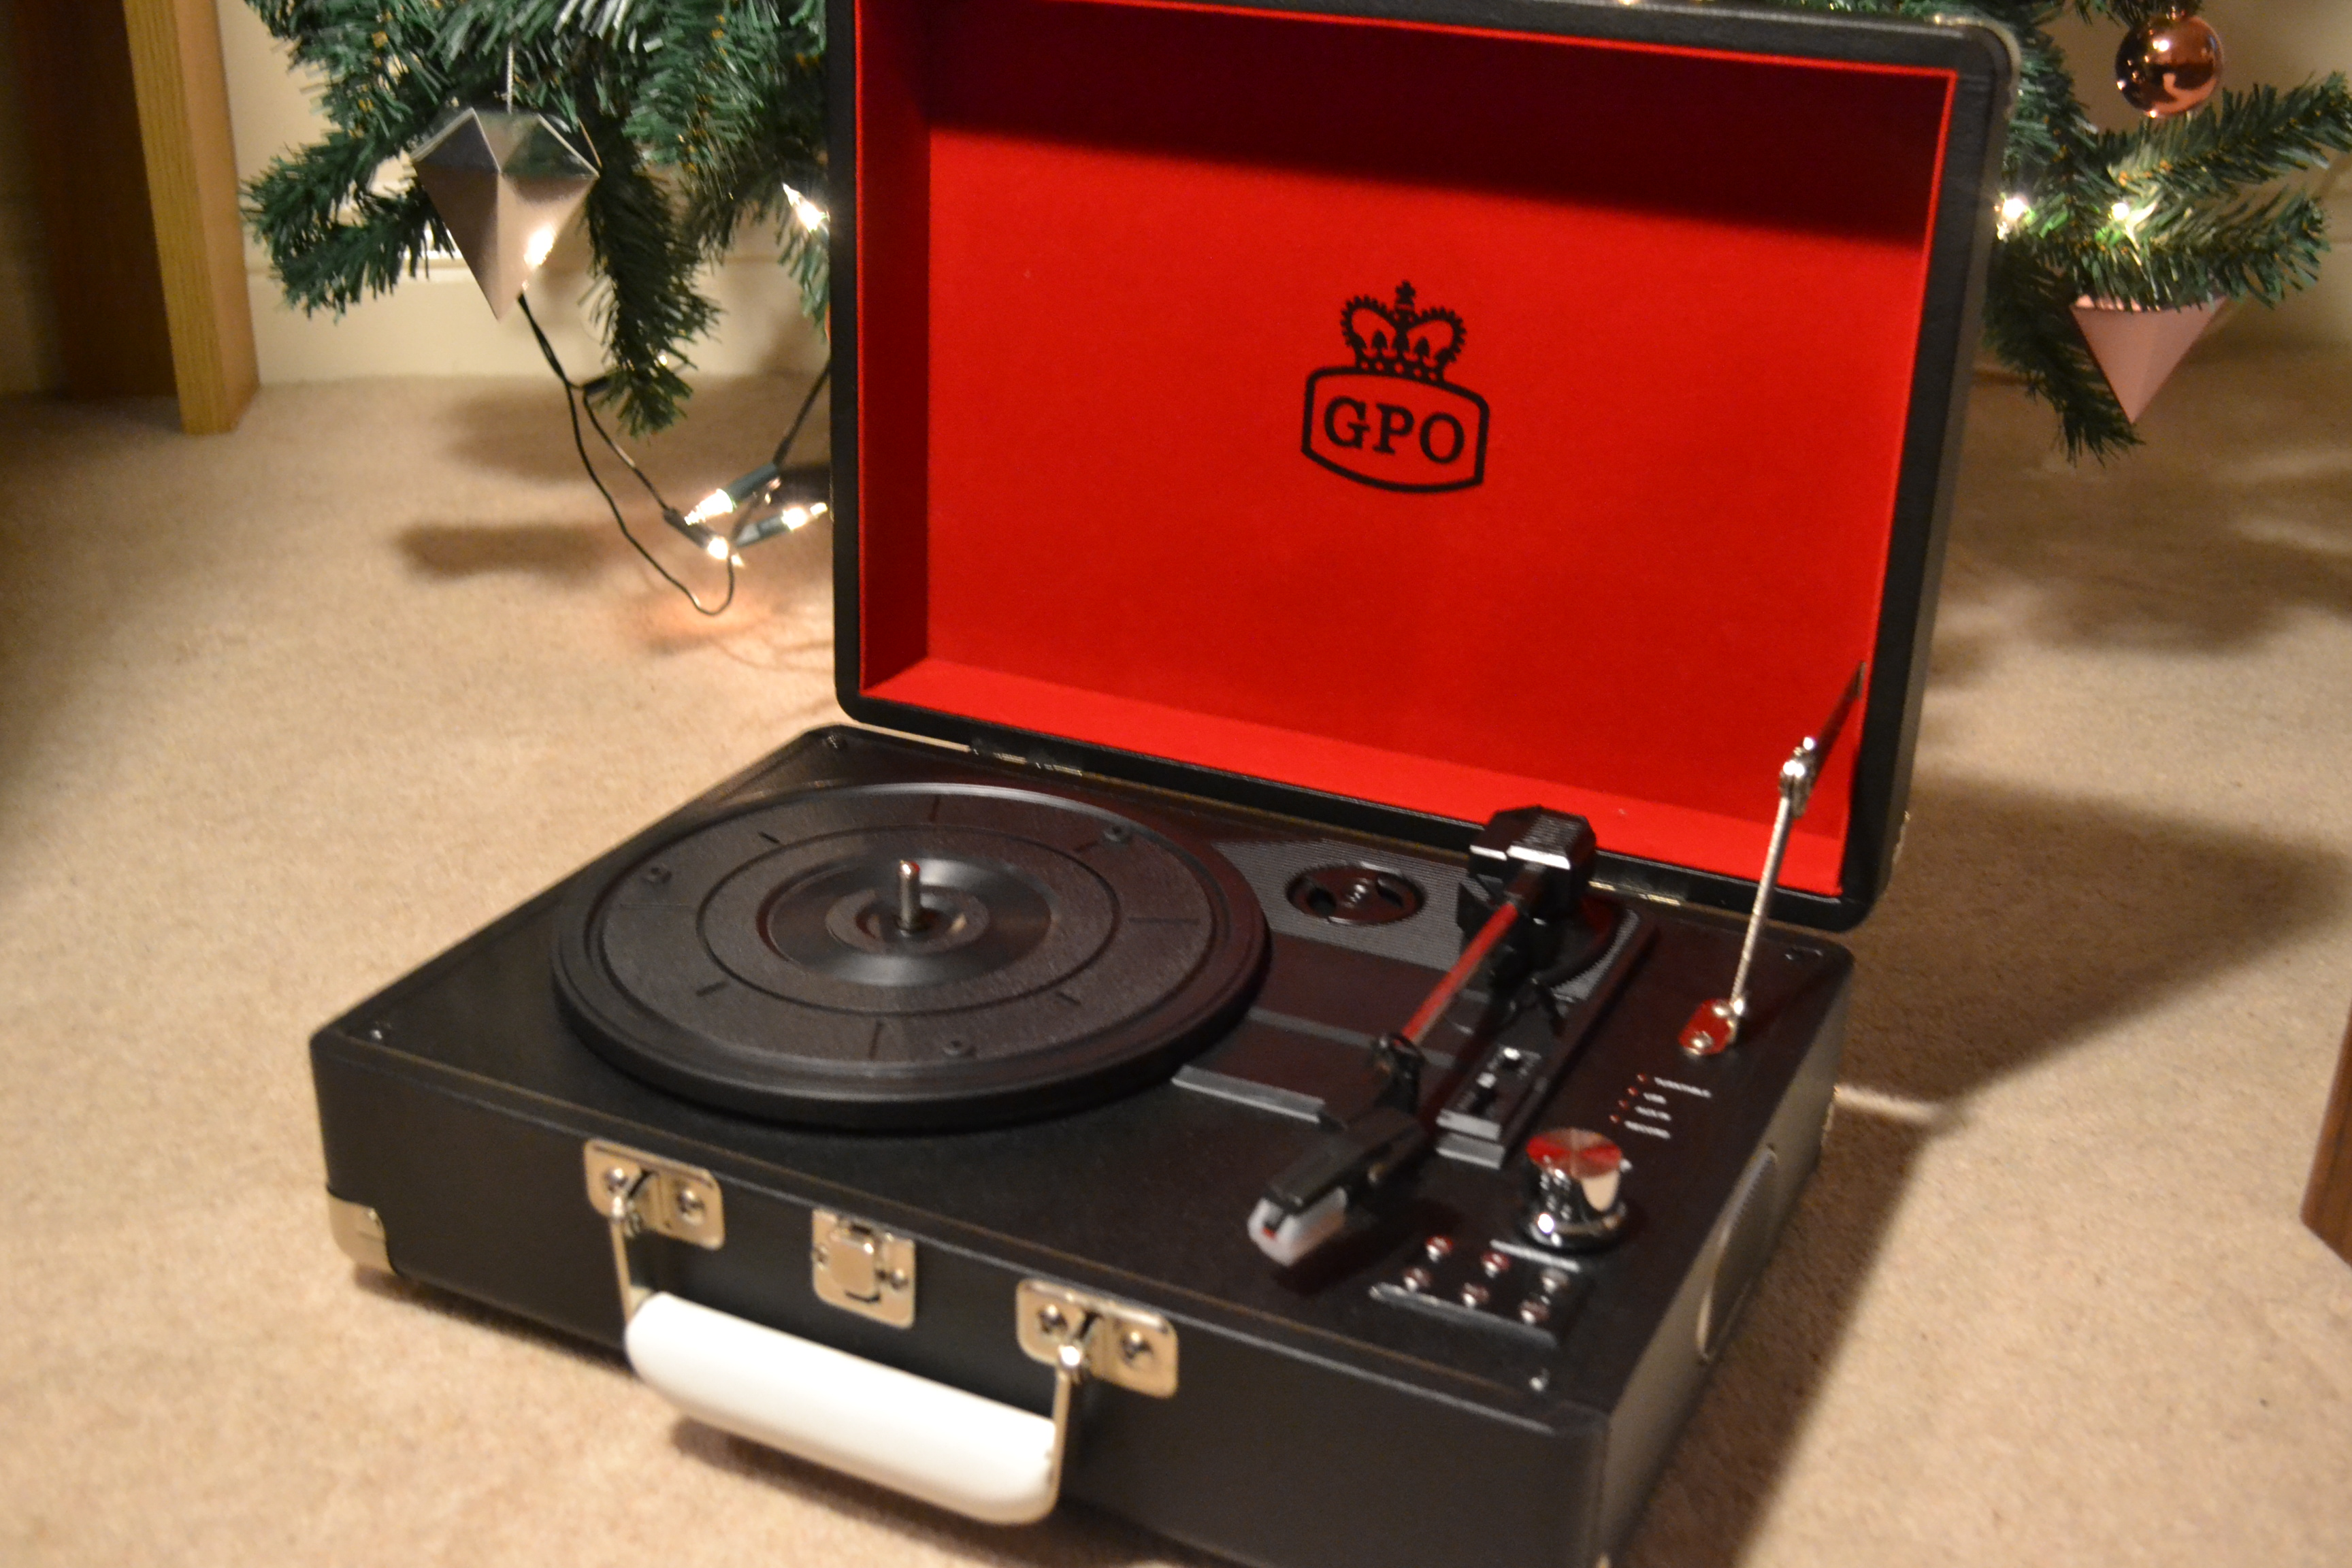 REVIEW: GPO Attaché Record Player